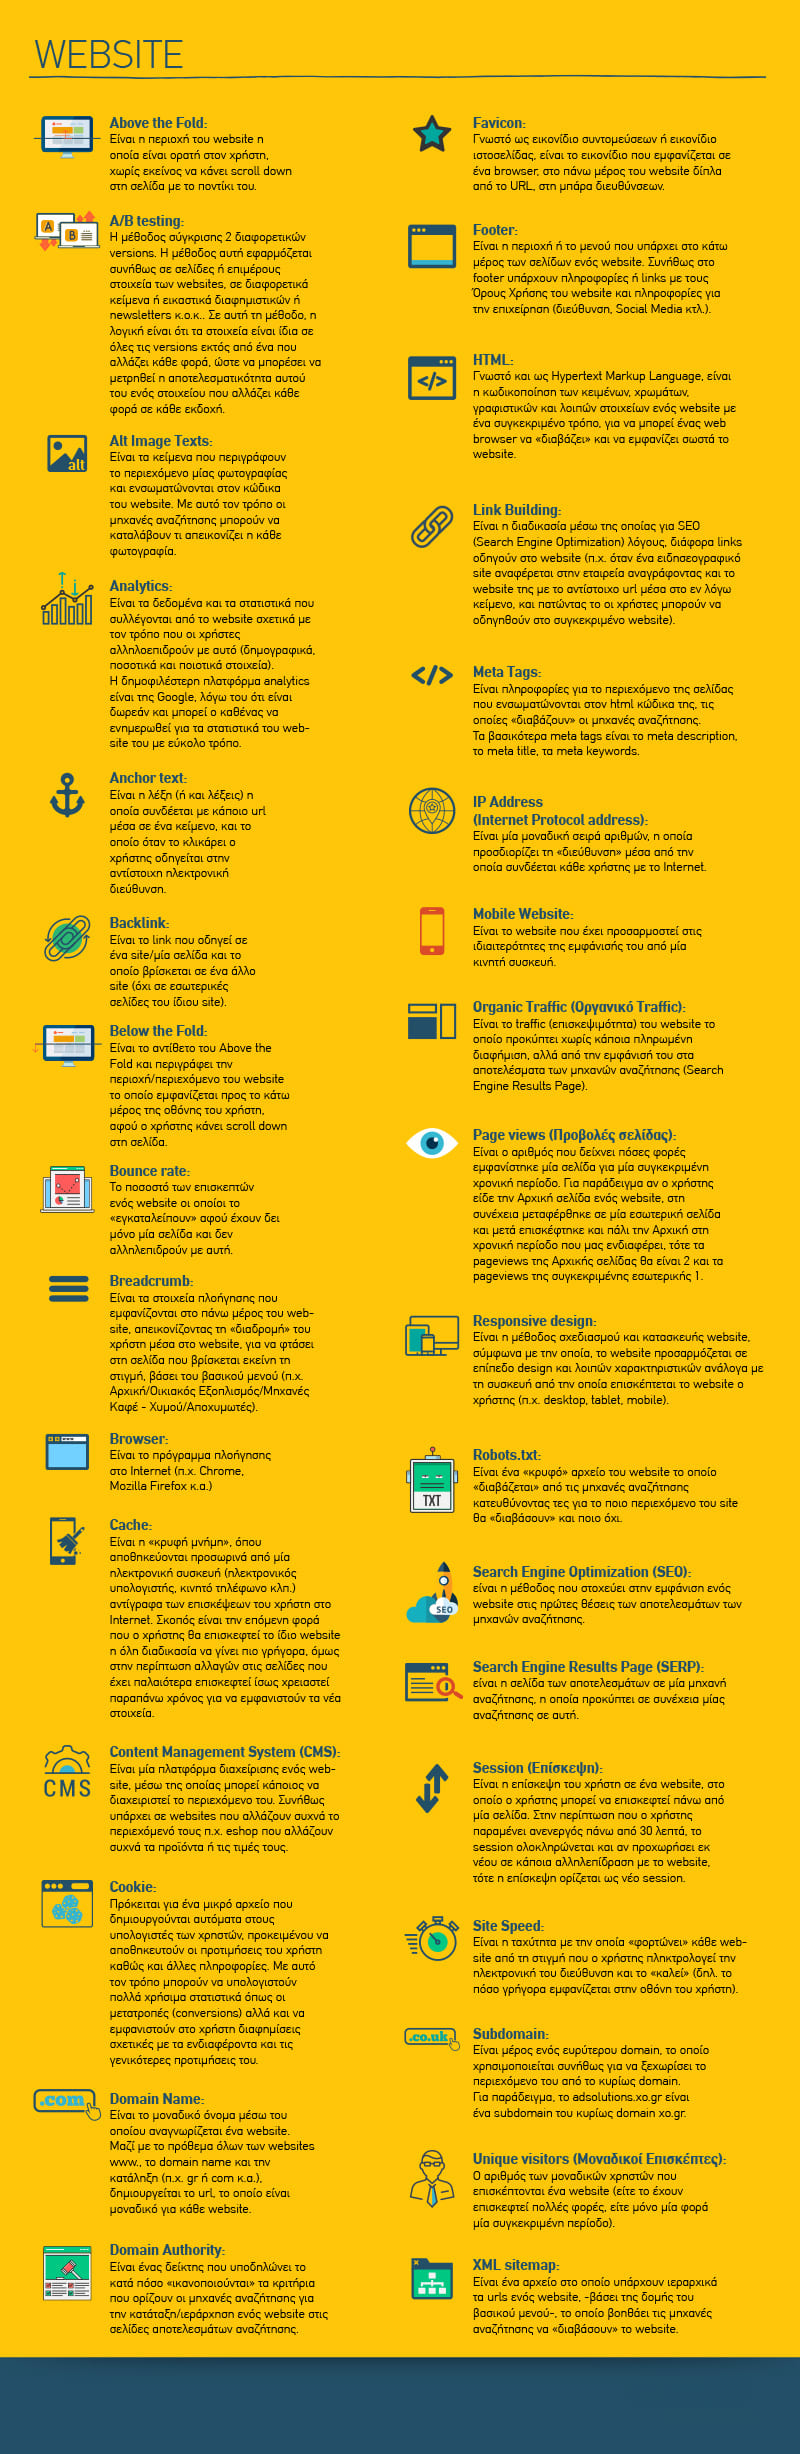 Infographic Websites